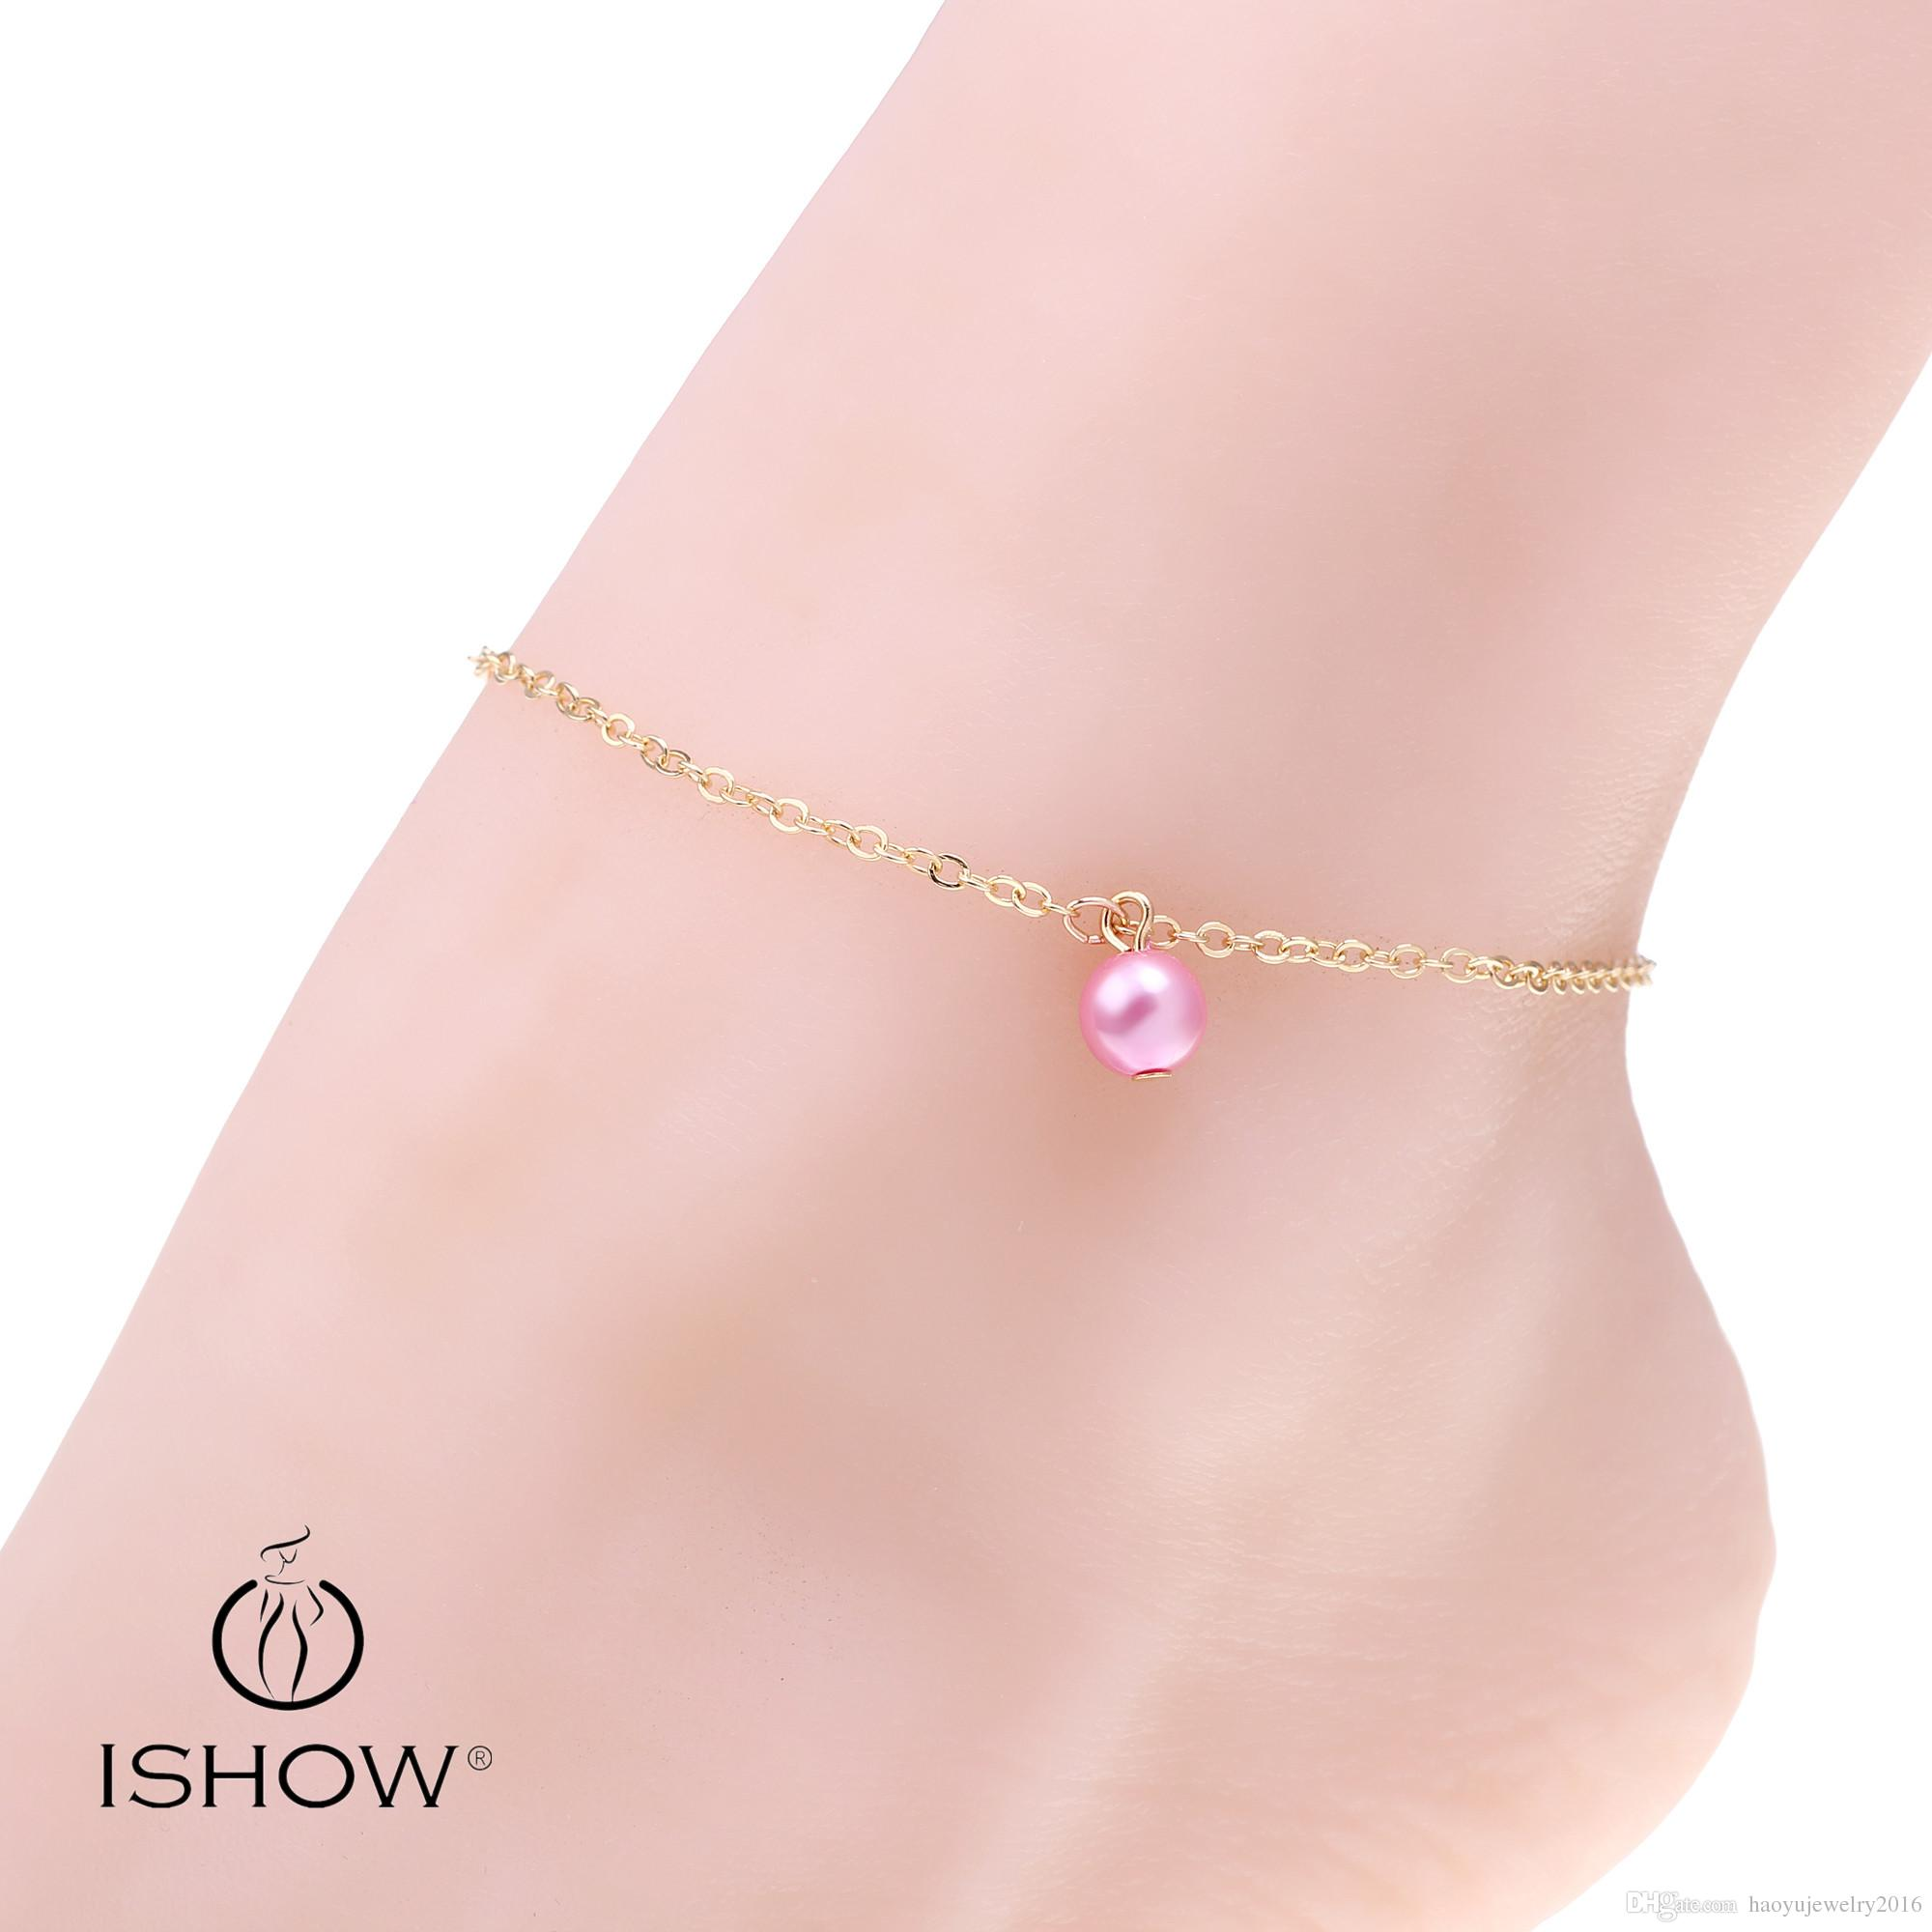 jewelery foot anklet chic shaped calusa boho wrist online accessories mojo and ankle buy jewelry v